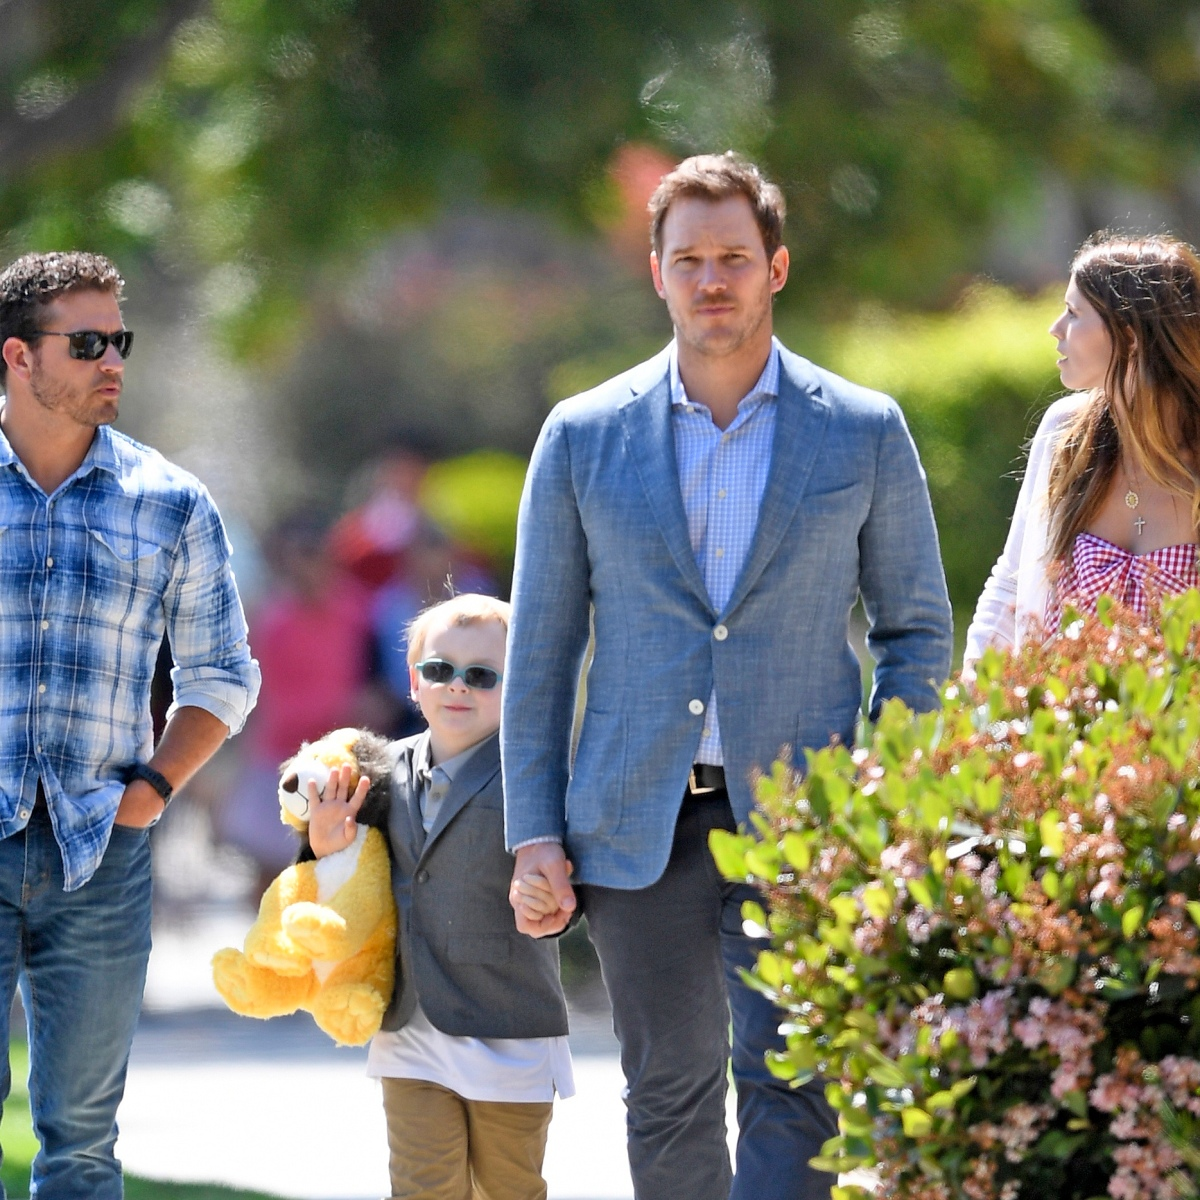 Chris Pratt and Fiancée Katherine Schwarzenegger Take His Son Jack to Church for Easter — See the Sweet Pics!